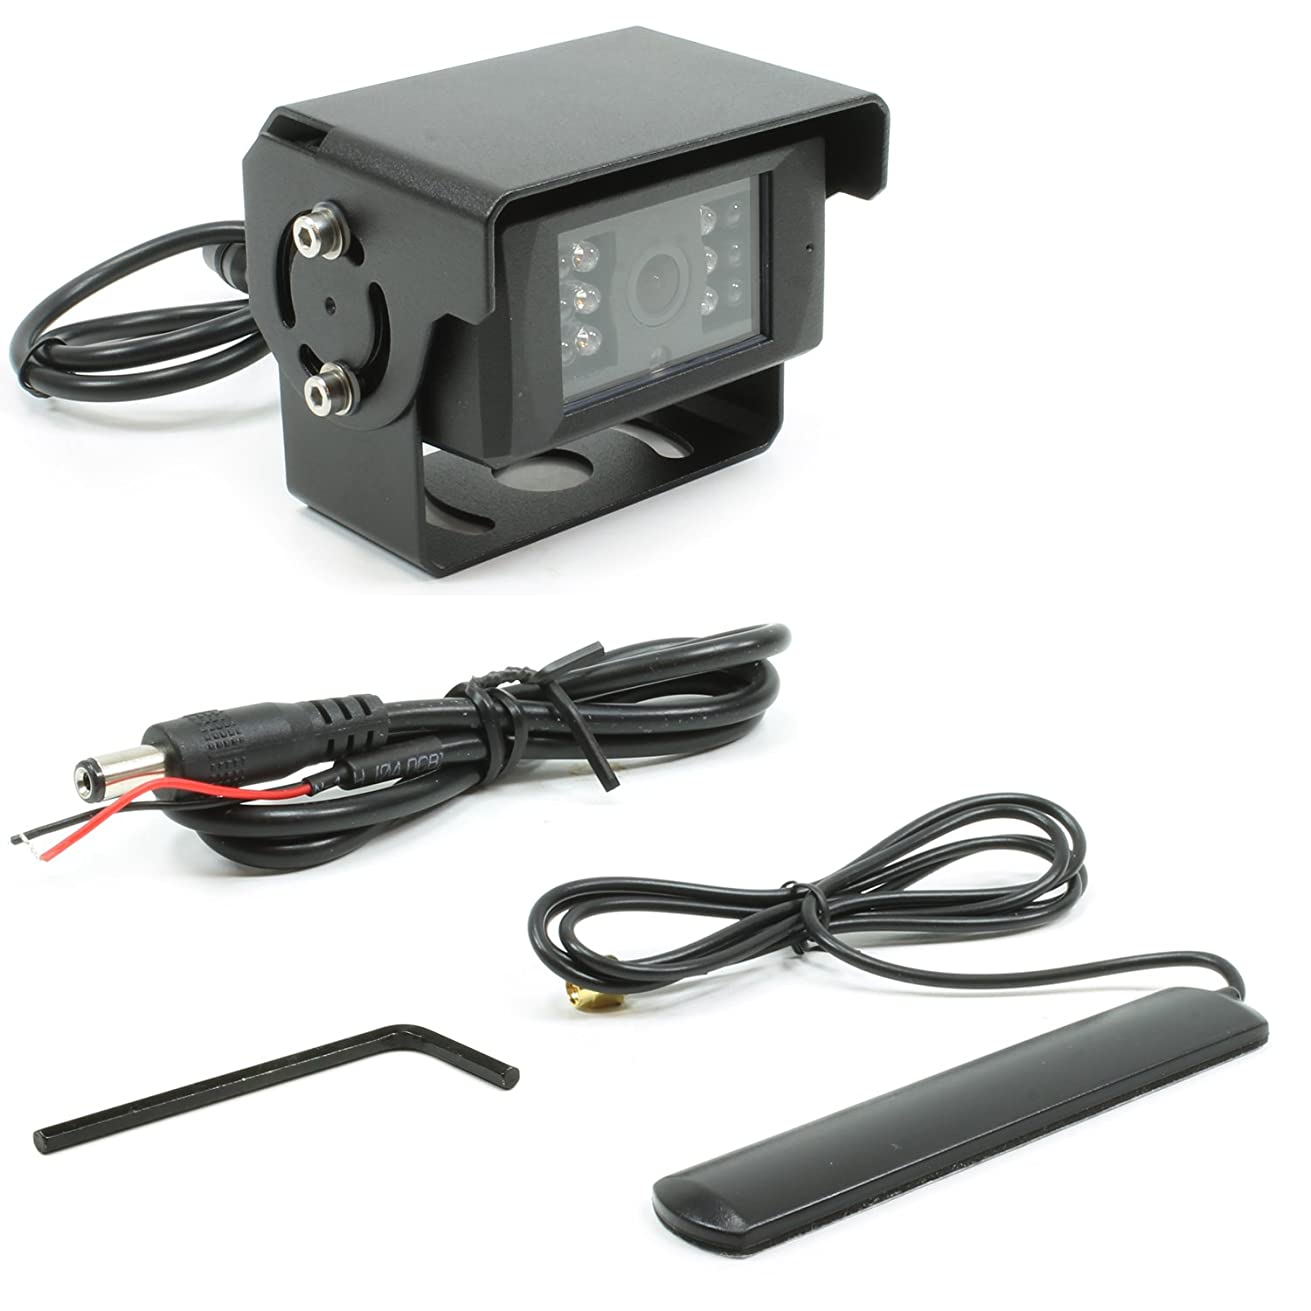 Rostra 250-8153 Cmos Color Camera with Wireless Video Transmitter/Built-in Microphone/Infrared Led's